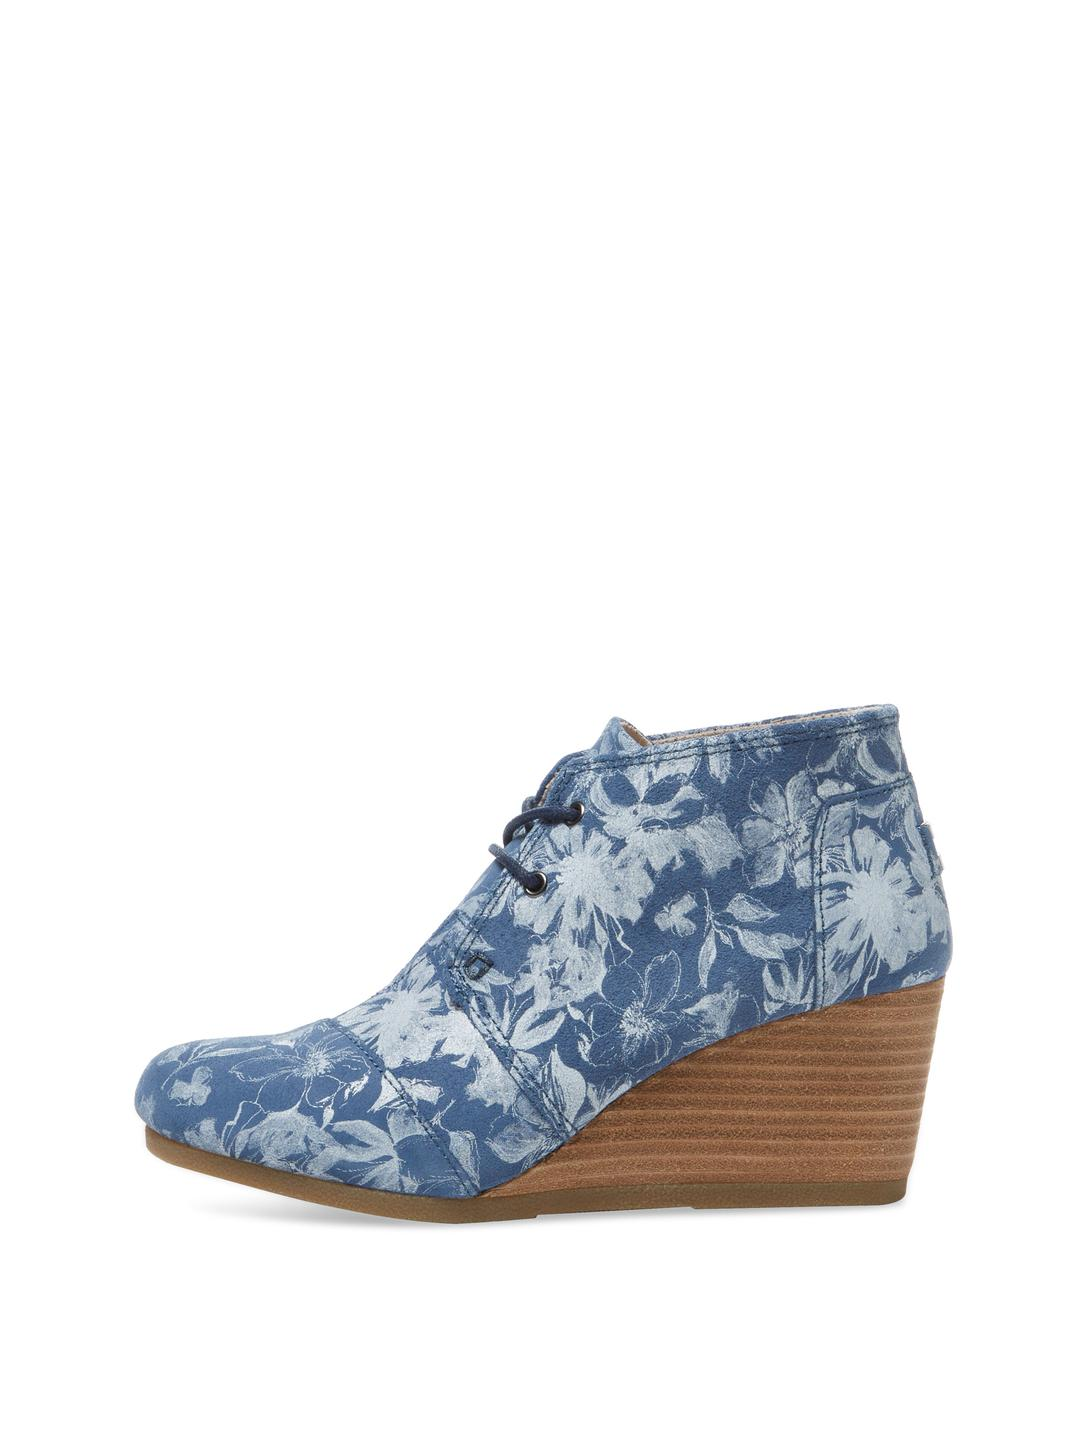 b11868e88a4 Lyst toms desert suede wedge bootie in blue jpg 1080x1440 Toms blue floral  pattern wedges